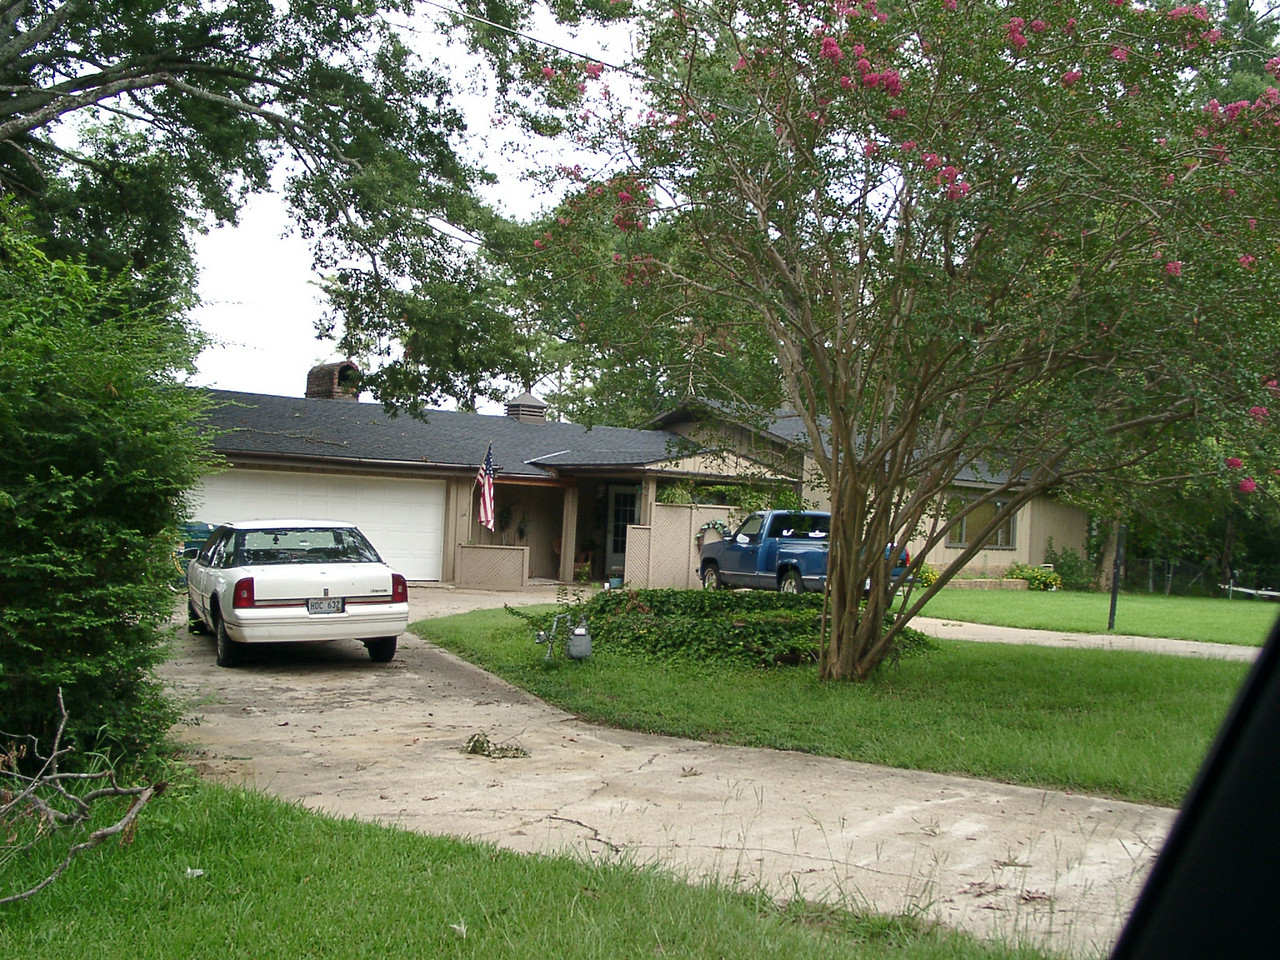 This is the original id Software lake house in Shreveport, LA - the place where we started the company.  Located on Lakeshore Drive, this is what the house looks like today.  Back in 1990, there were 4 Softdisk guys living in this house together; it was a total frathouse.  Jay Wilbur, Jason Blochowiak, John Carmack and Lane Roathe were the main residents and Tom Hall and myself would come over every day to work on our games.